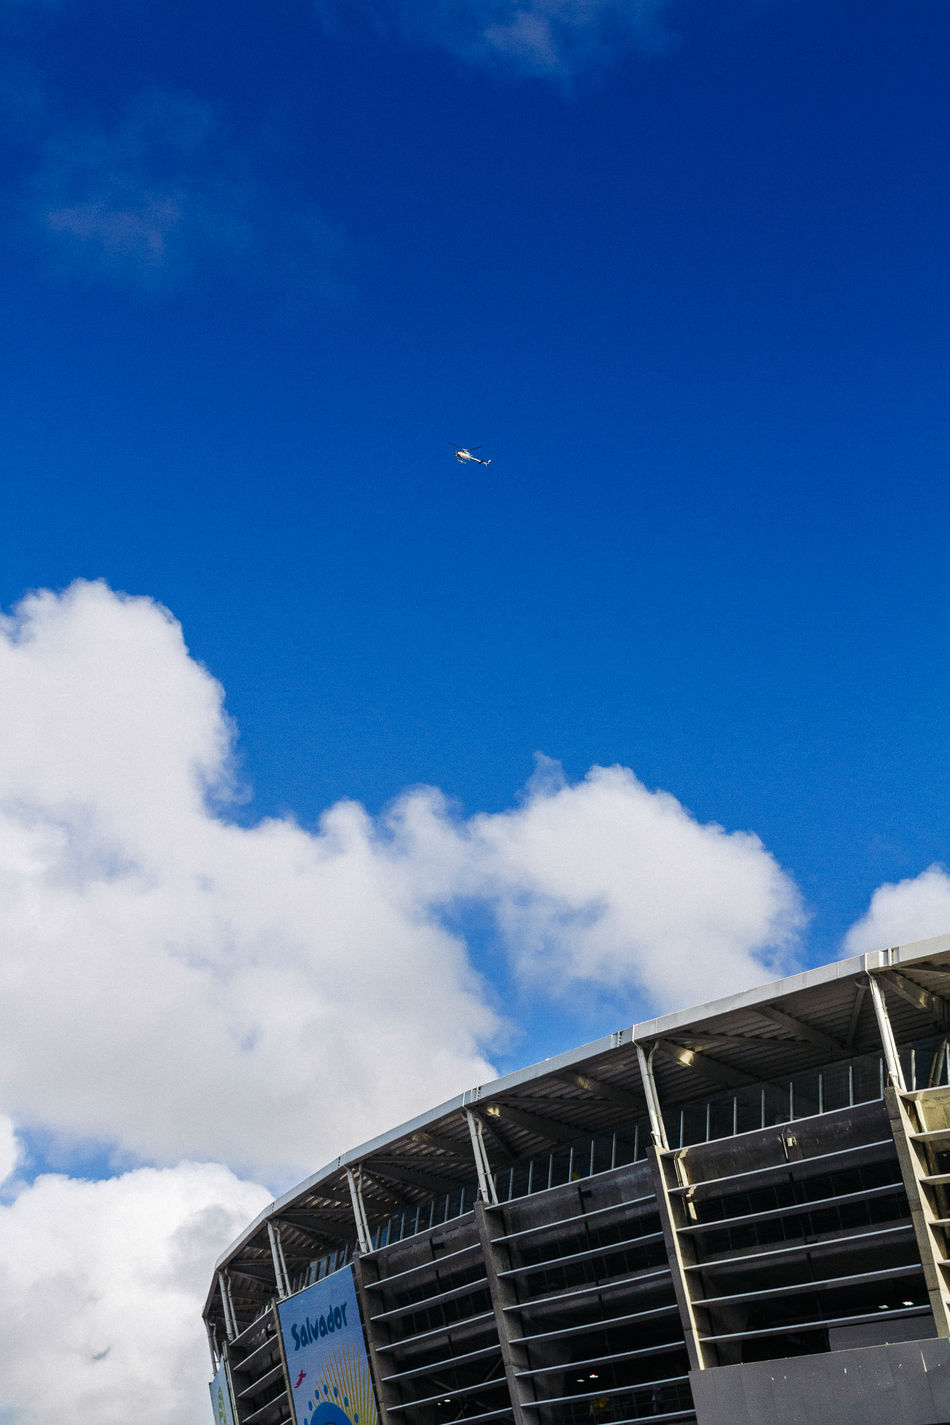 Bahia Brasil Brazil Cloud - Sky Dramatic Sky Exterior Fifa Stadium Low Angle View Outdoors Overcast Perspective Salvador Sky Soccer Stadium Worldcup 2014